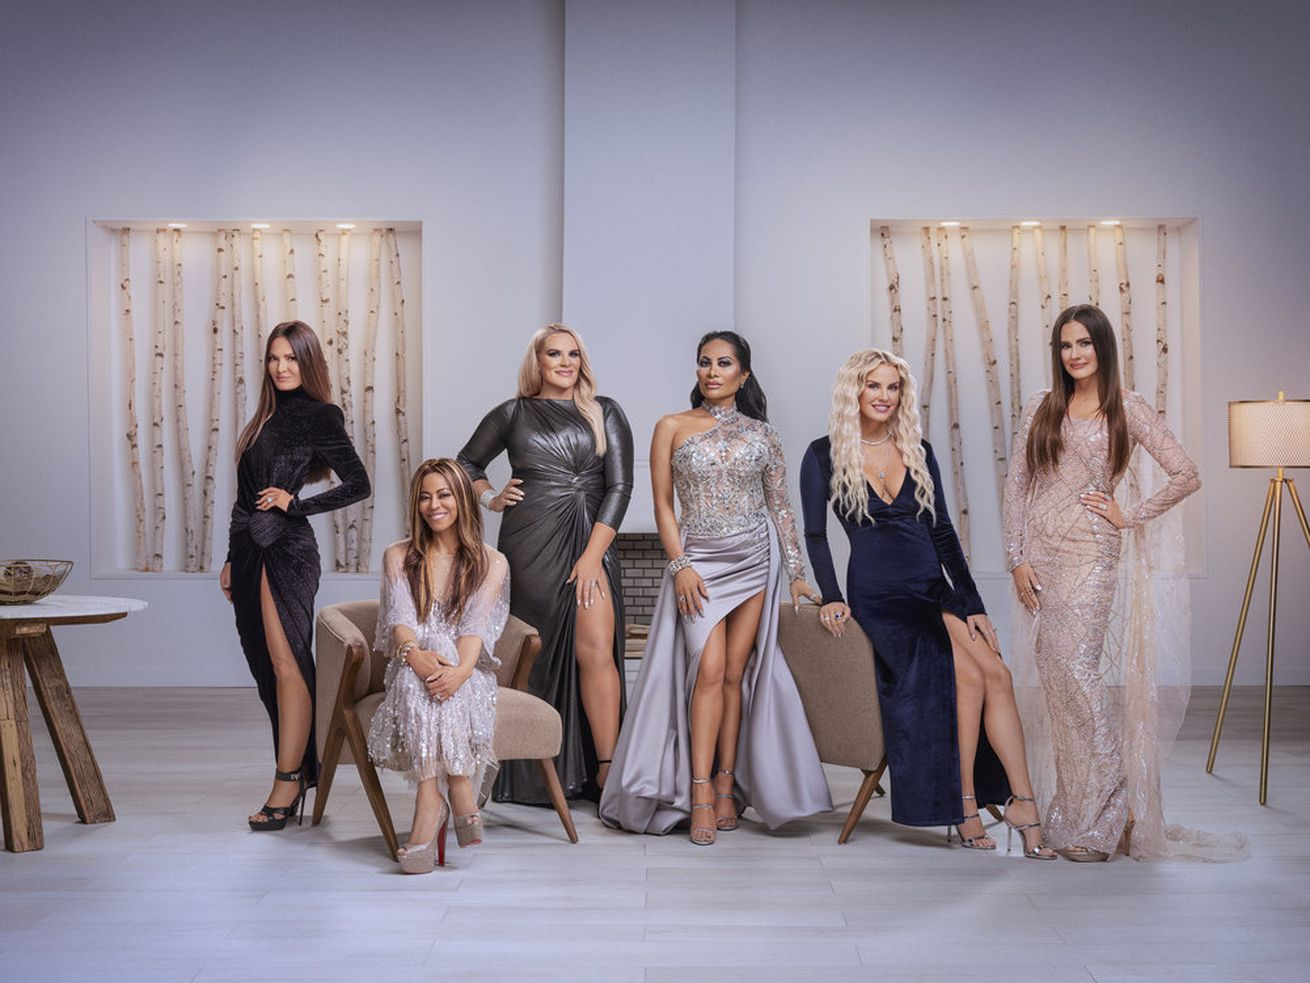 """Lisa Barlow, Mary Cosby, Heather Gay, Jen Shah, Whitney Rose, Meredith Marks from """"The Real Housewives of Salt Lake City."""""""